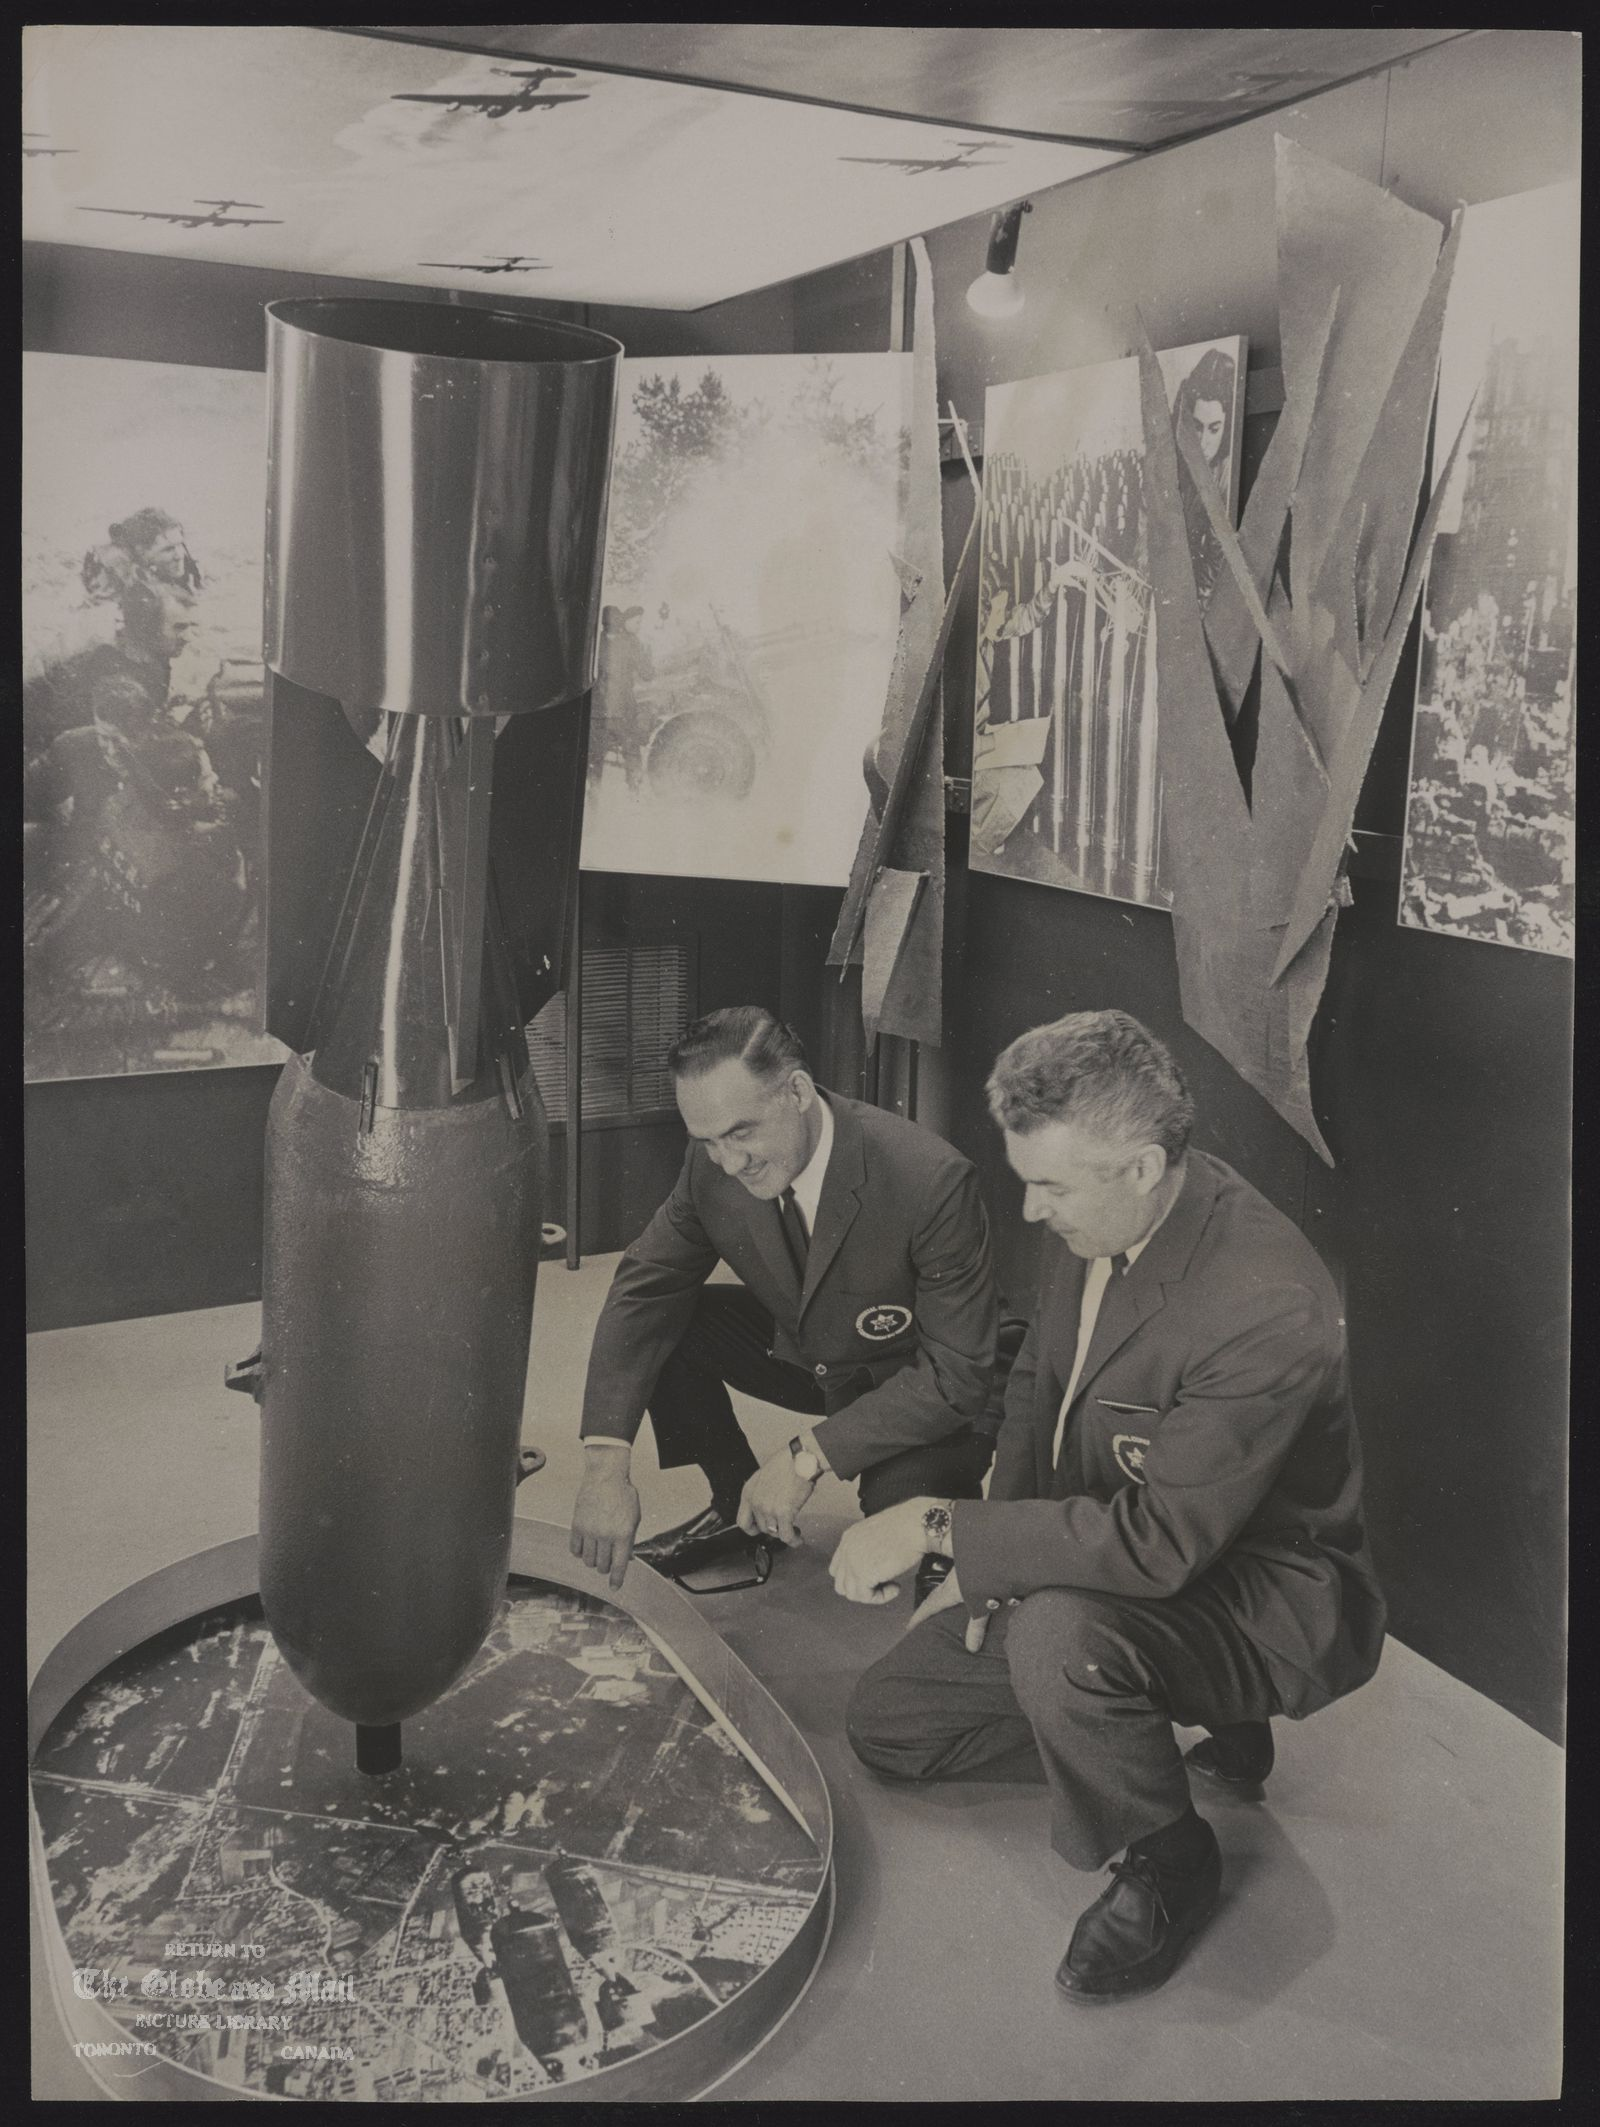 CANADA dominion Centennial Caravans Picture IV Caravan head John Coupland, right, and one of eight caravan managers John Bourbonnais look over 500-pound semi-armor piercing shell used in World War II. Both men are veteran fighter pilots with the RCAF. The bomb is part of the caravans' ward display.